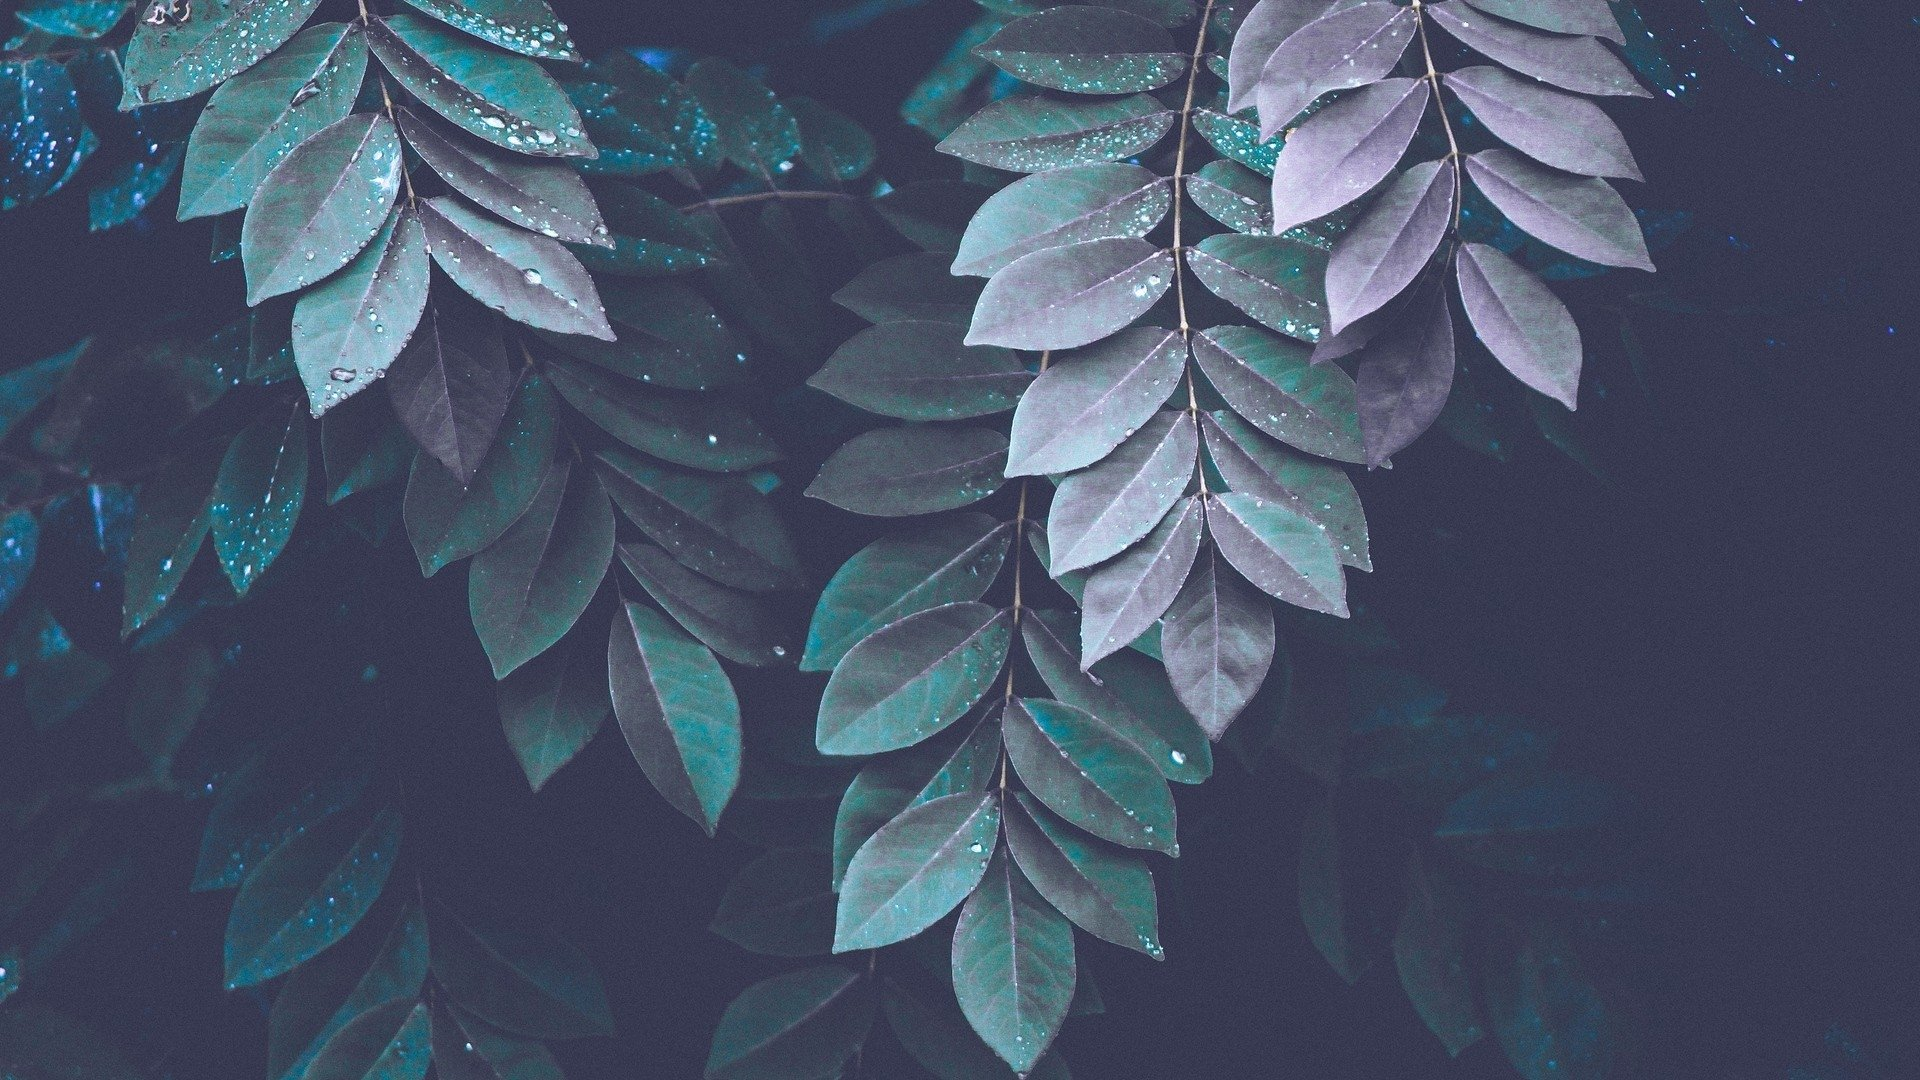 Green Aesthetic Wallpaper